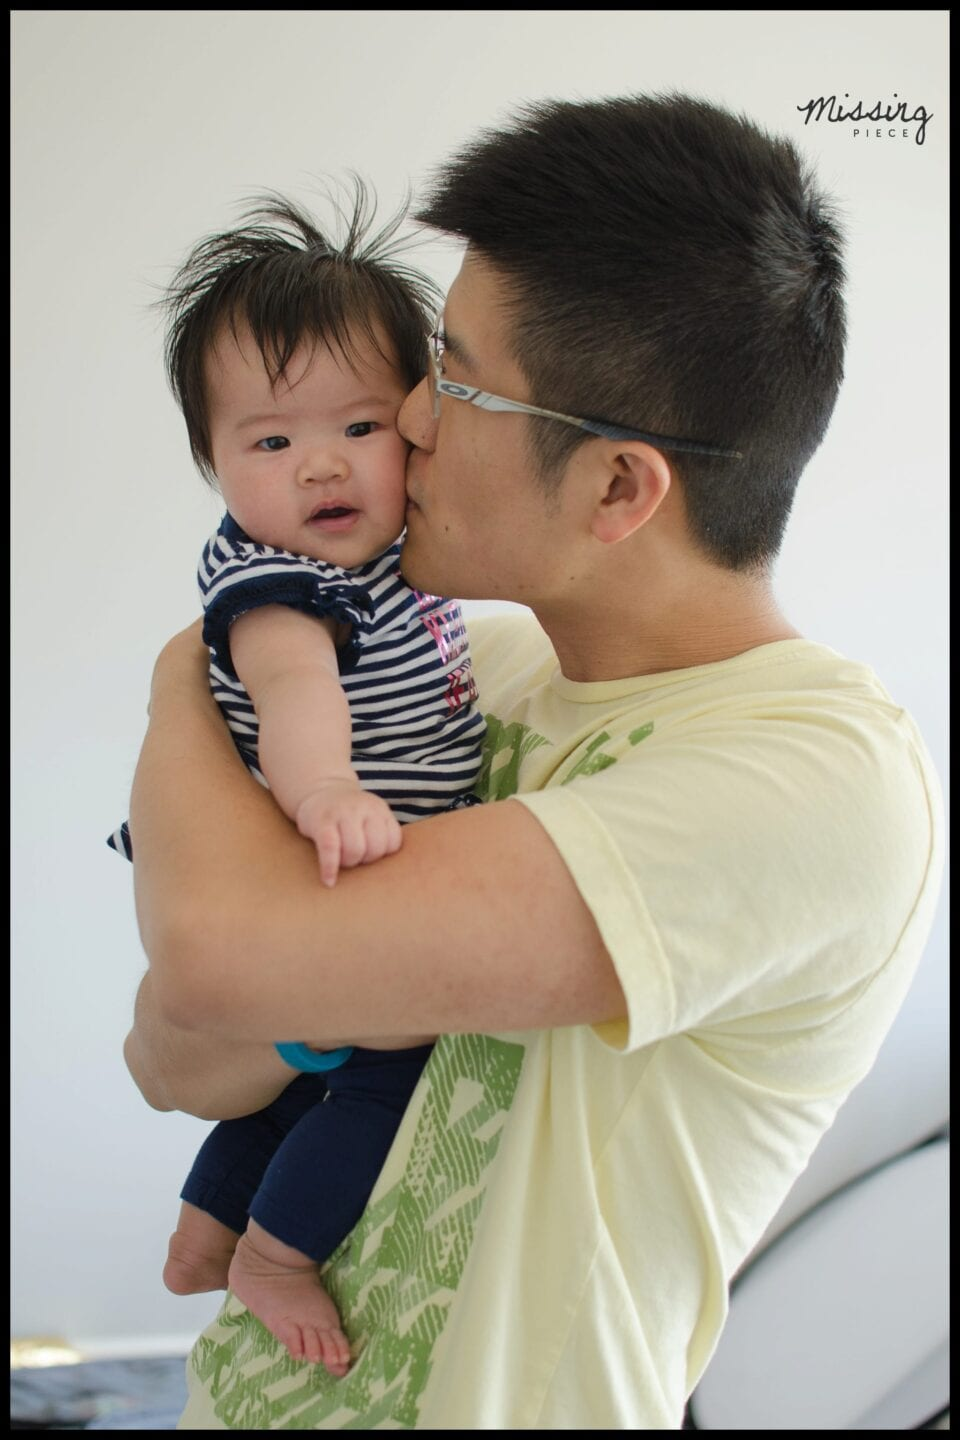 A father kisses his baby girl on the cheek.